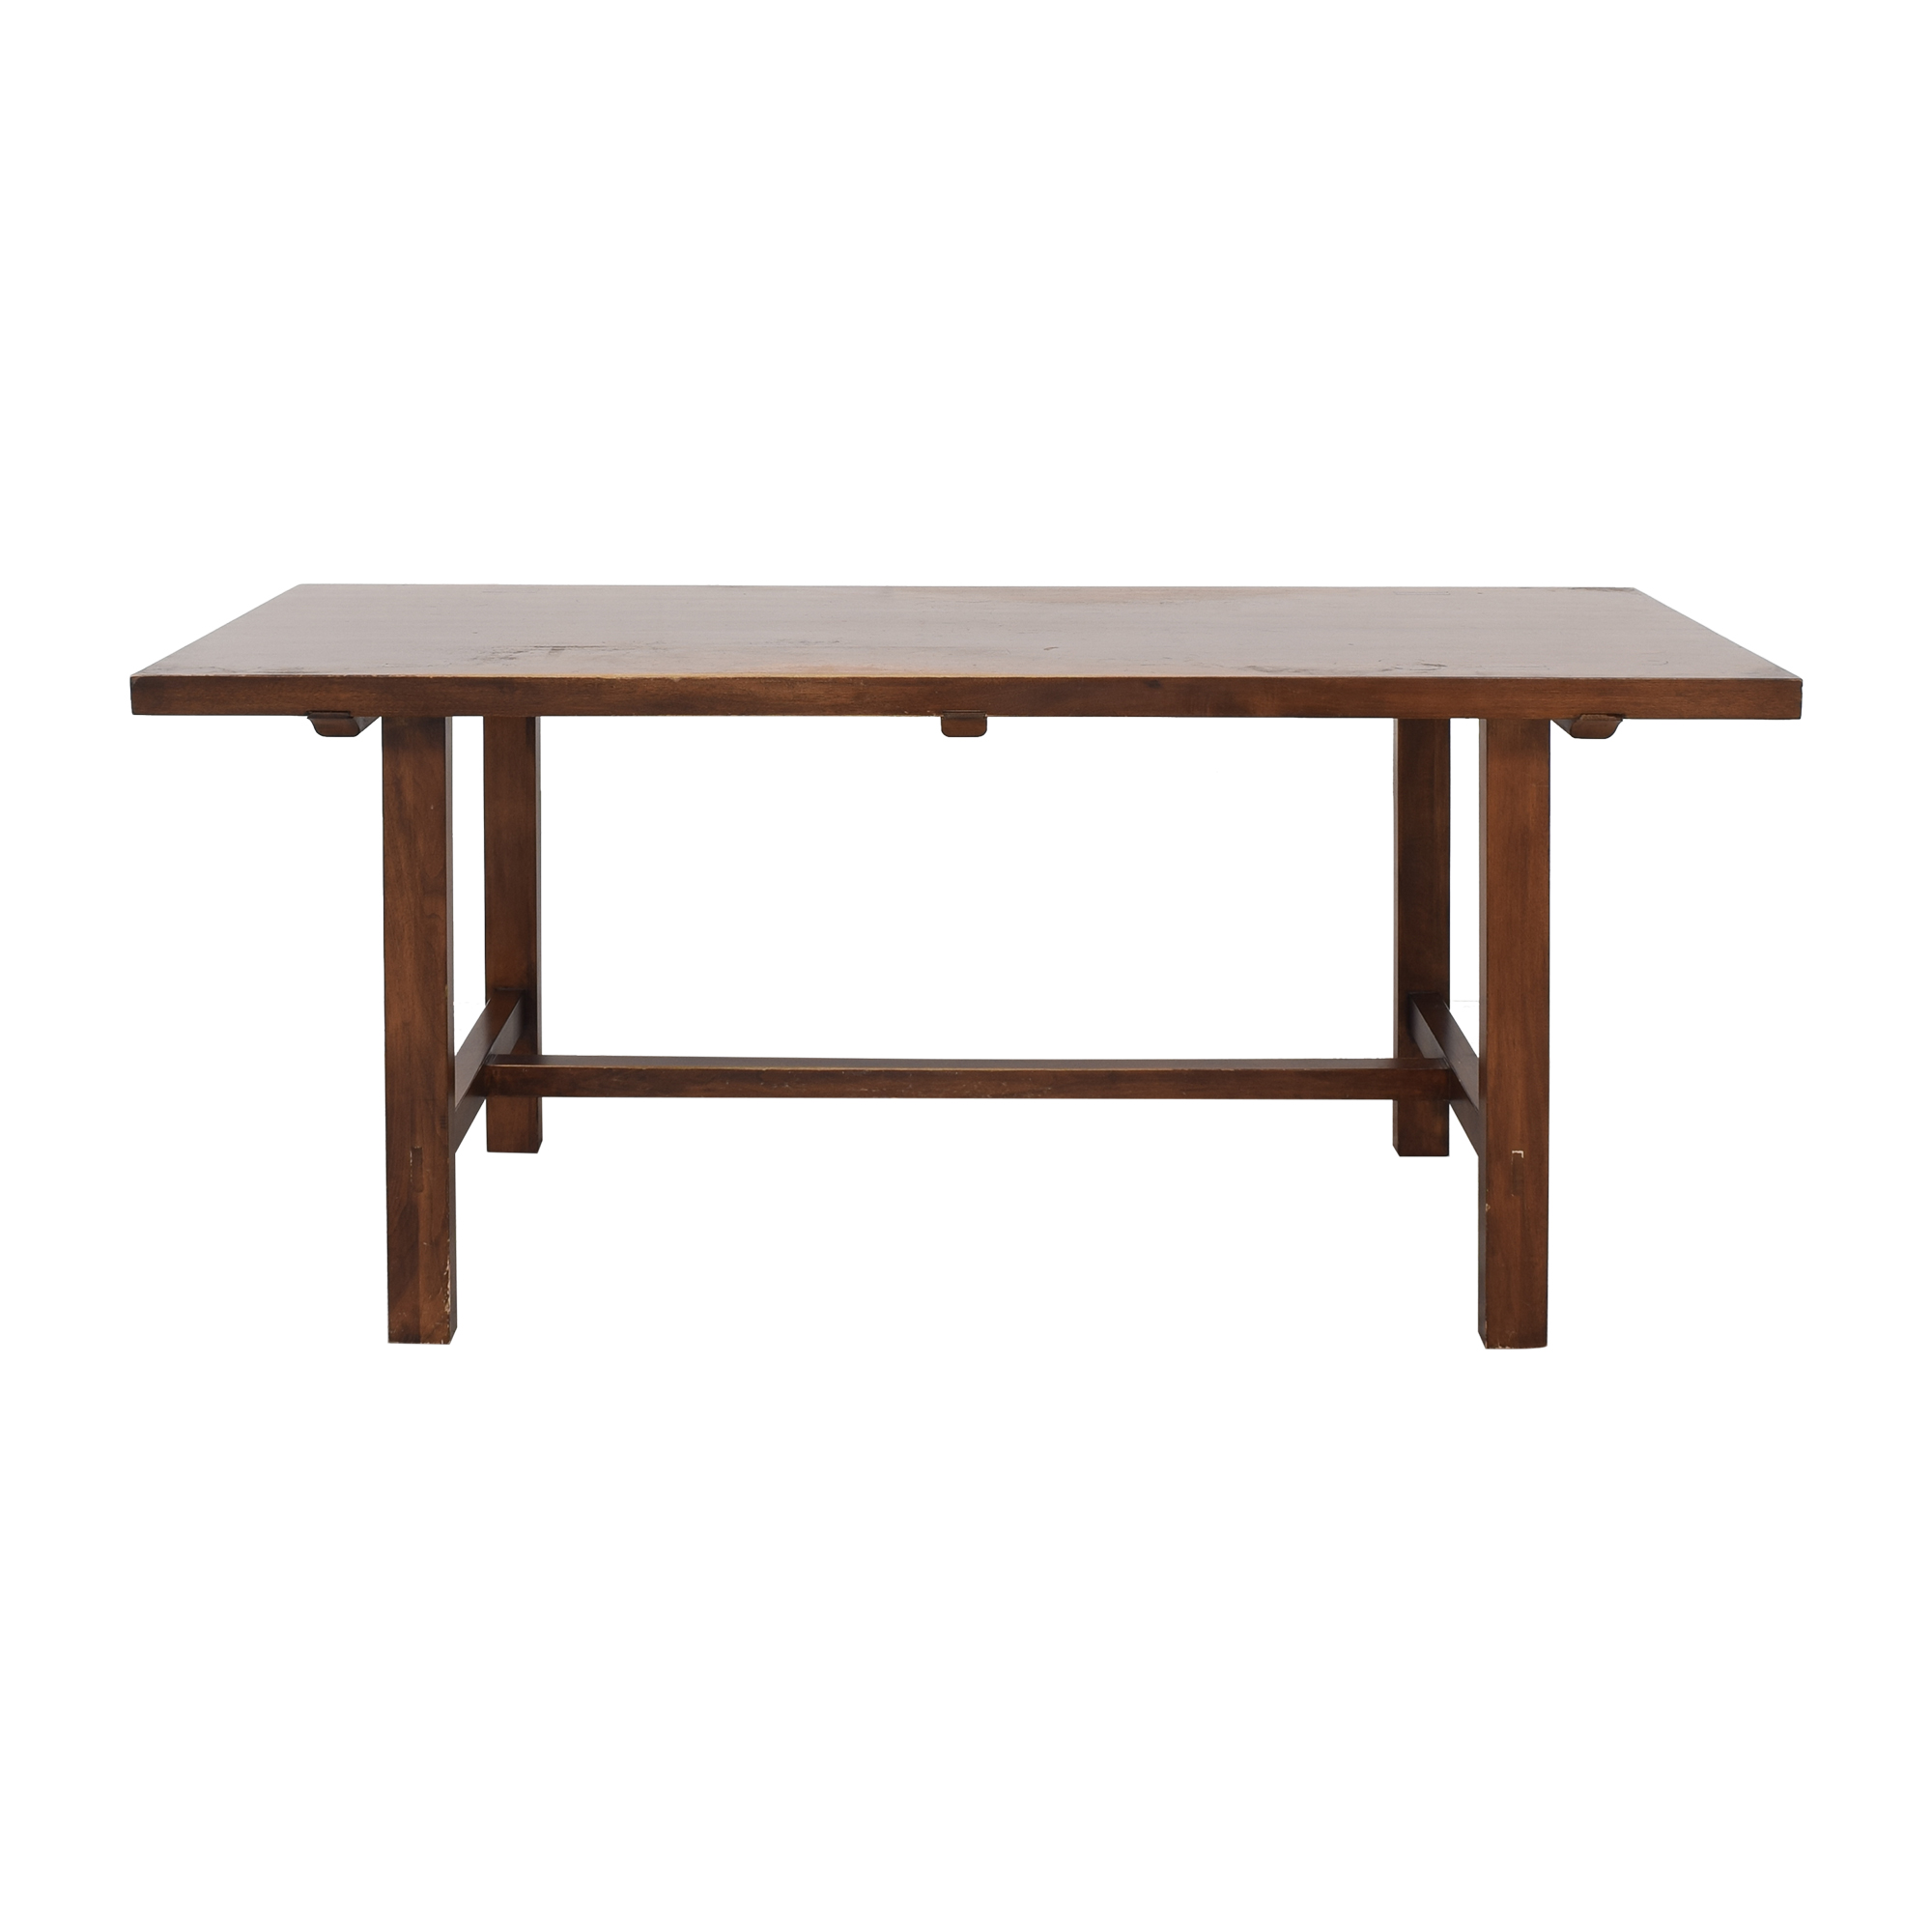 Wooden Dining Table dimensions